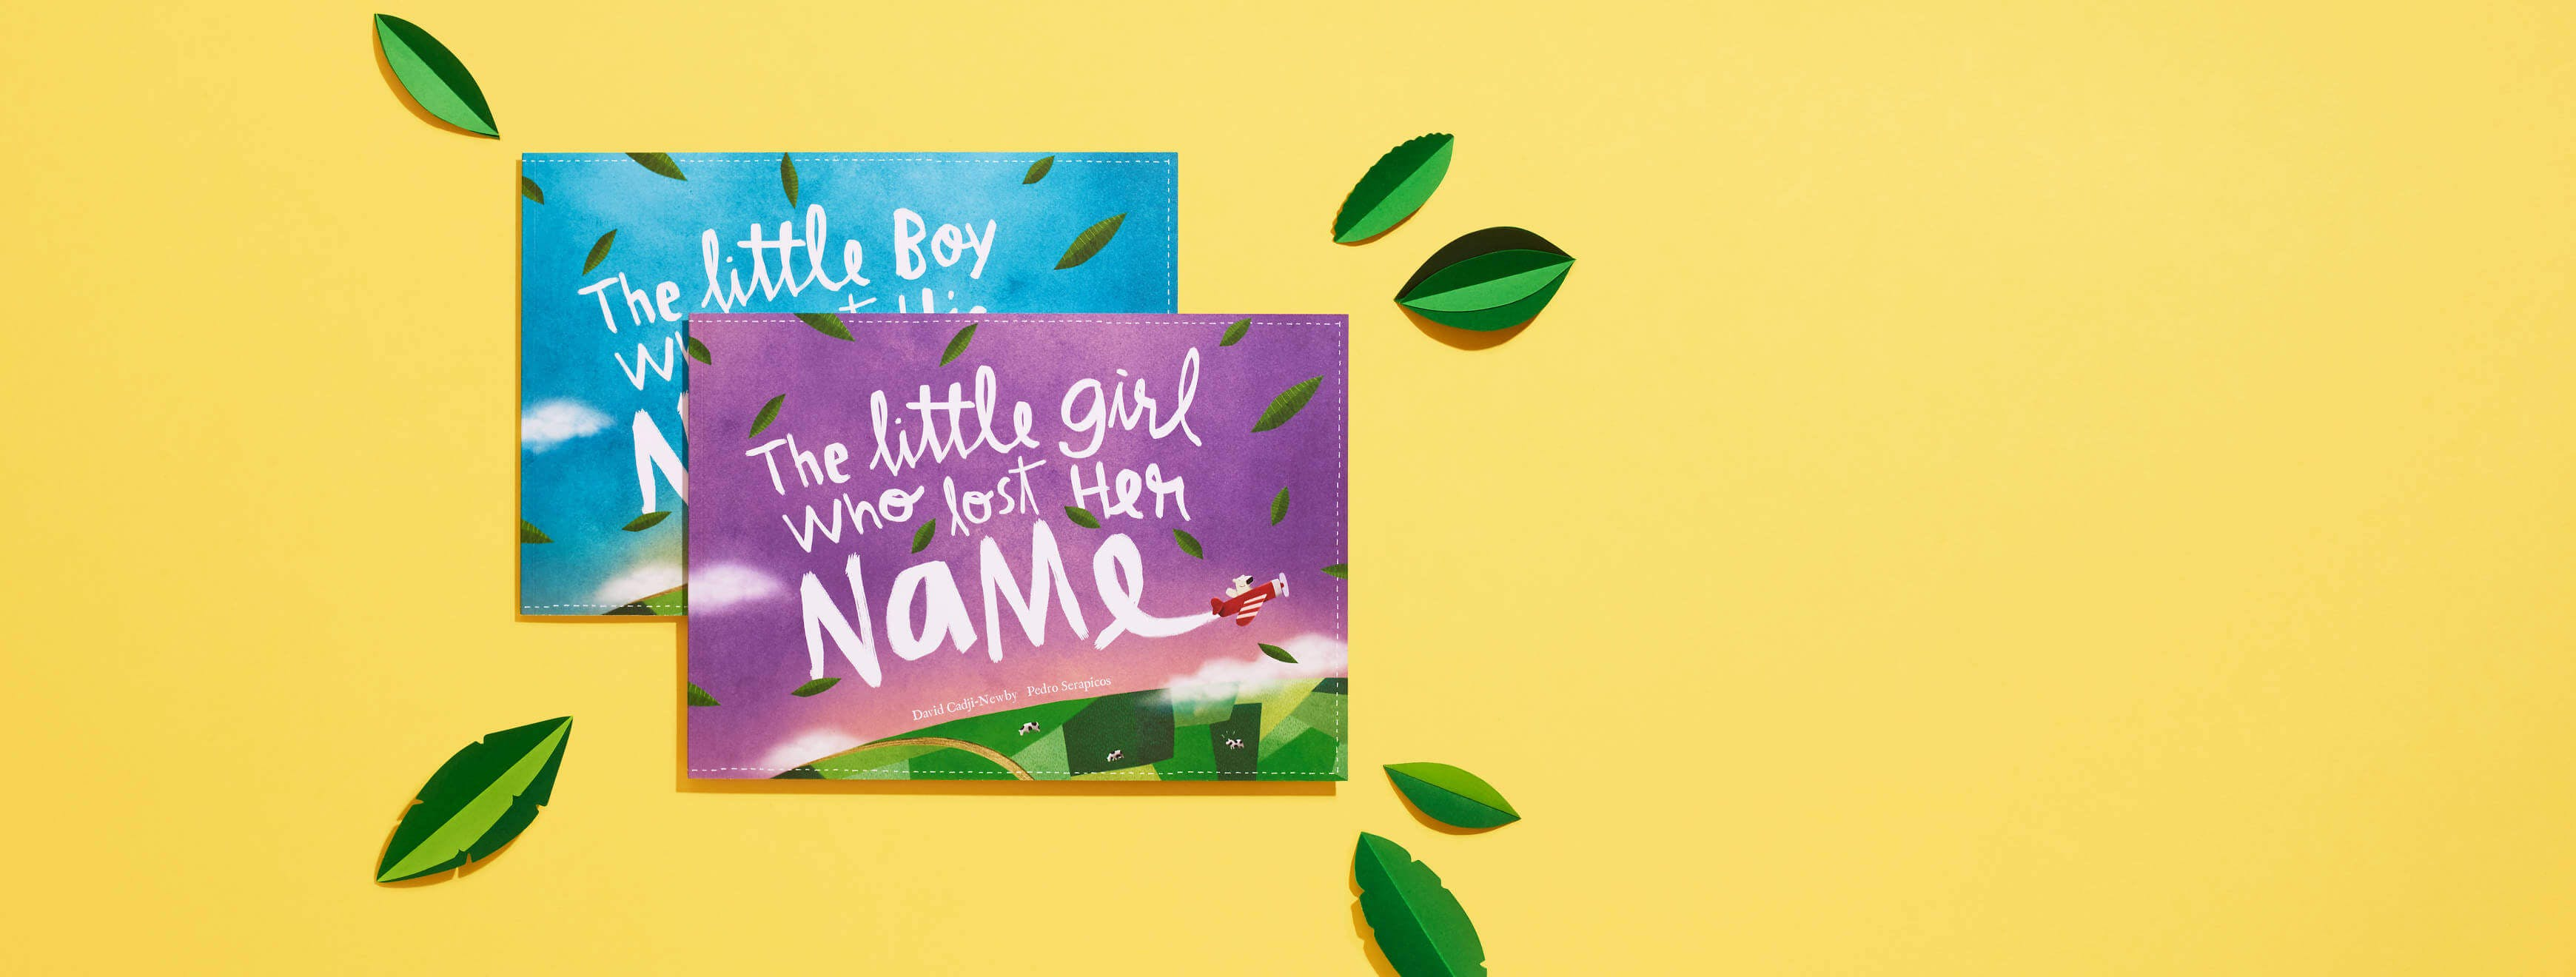 The little girl who lost her name and the little boy who lost his name laid on a yellow backdrop with several crafted leaves surrounding the book.